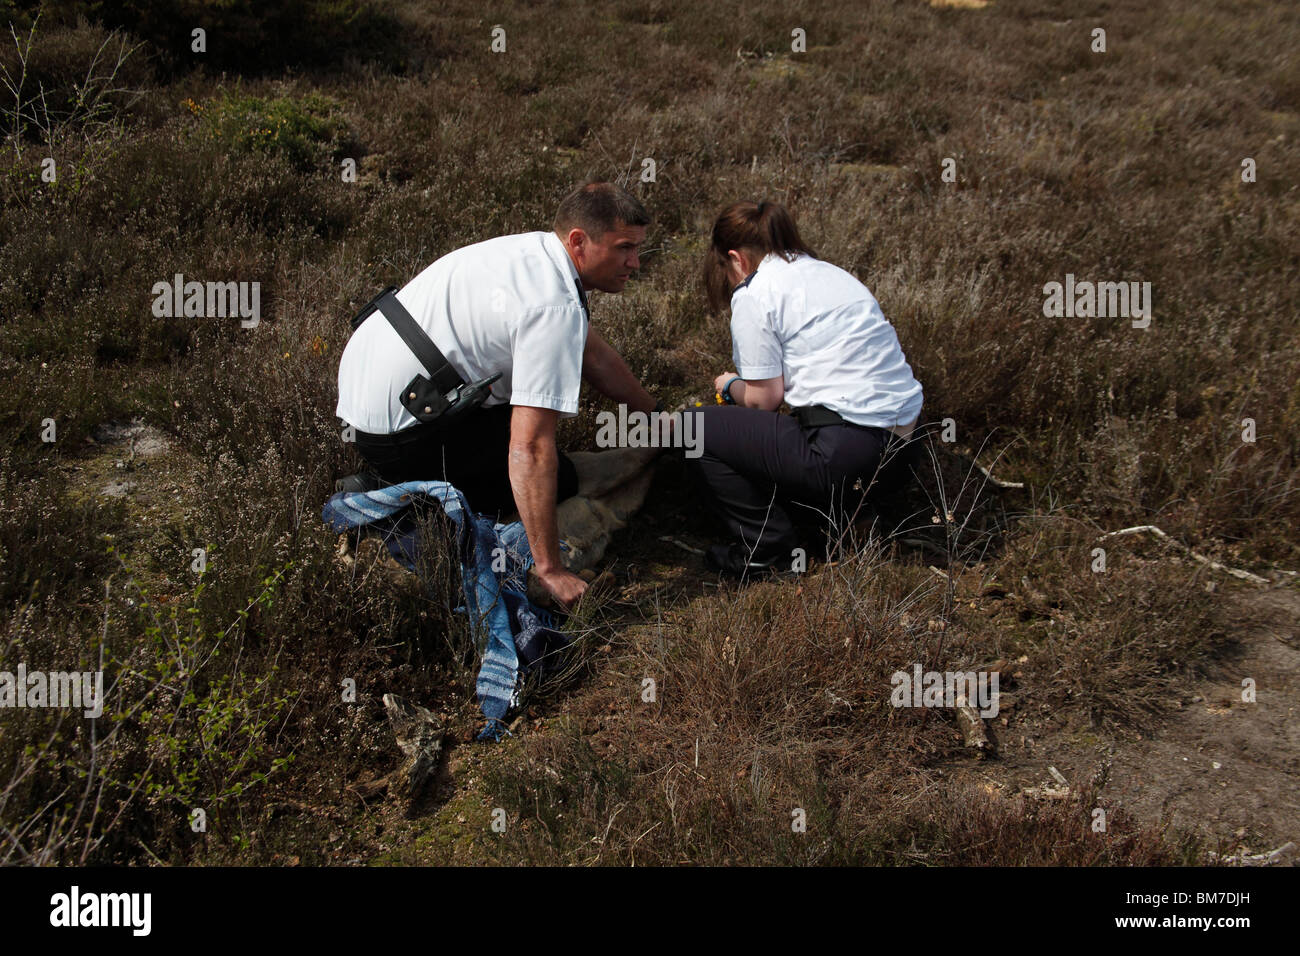 Roe Deer (Capreolus capreolus) with locked antlers RSPCA Inspectors removes leg ropes in preparation for release - Stock Image